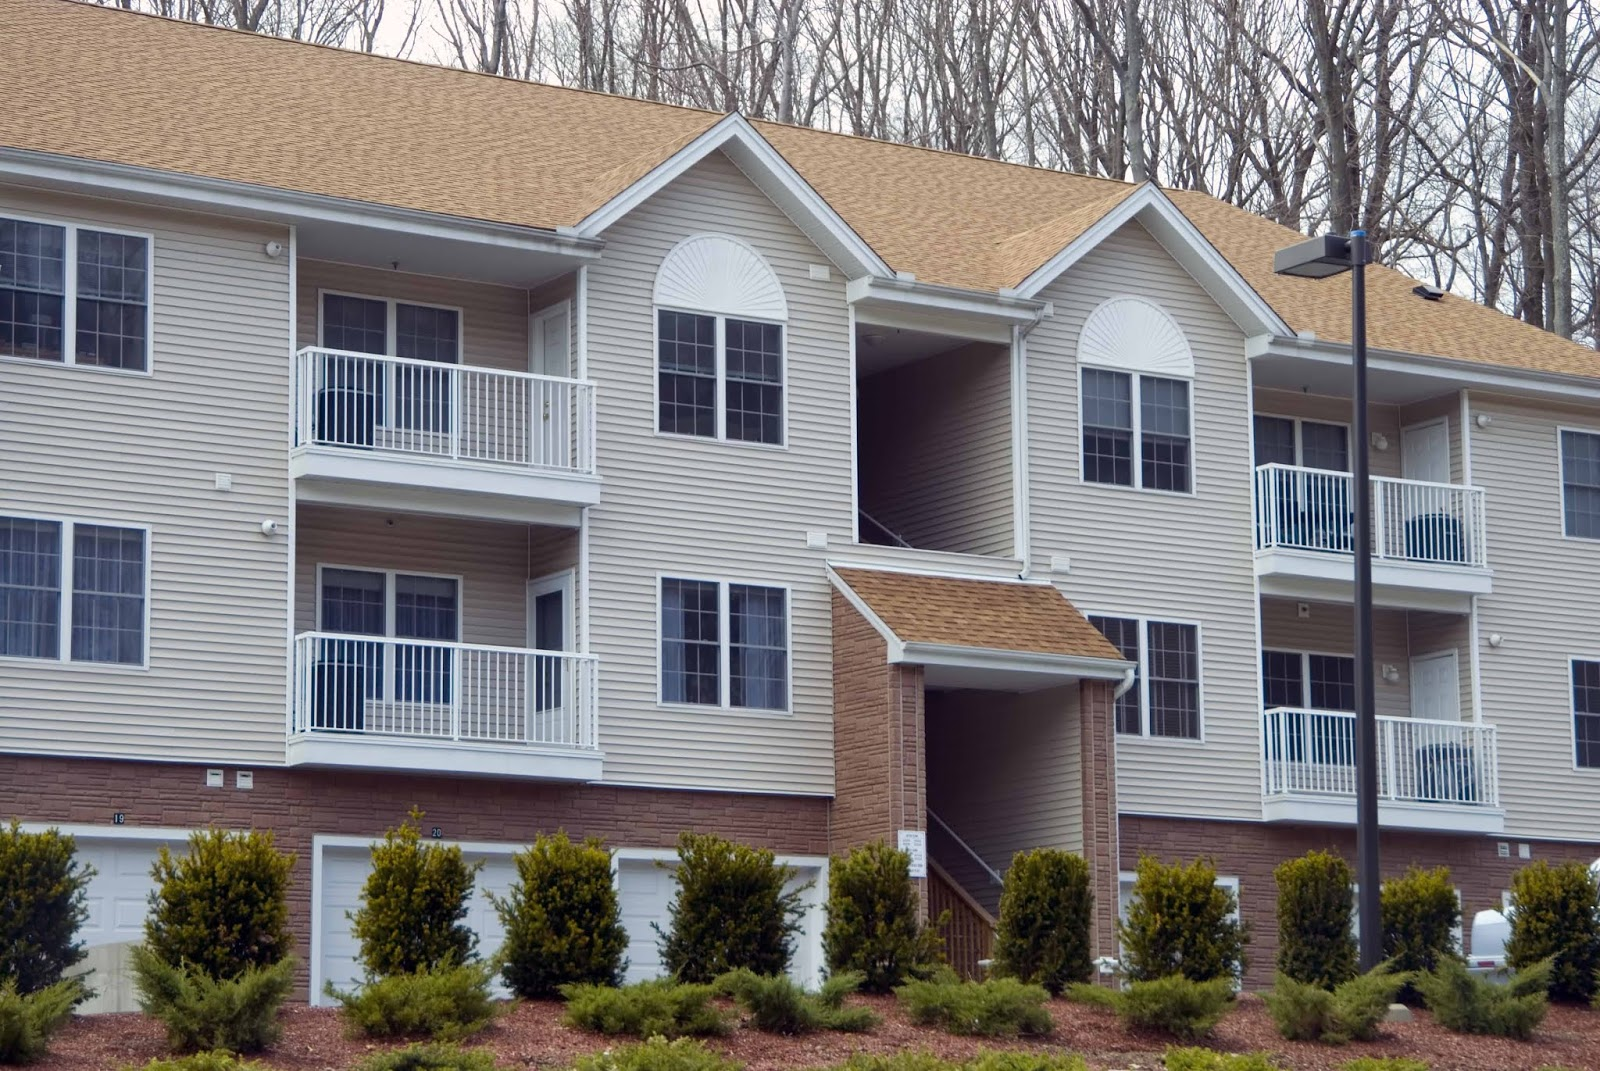 Increasing the Value of Apartment Complexes in Lexington, Kentucky (KY) with Landscaping, Parking Spaces or Clubhouse.